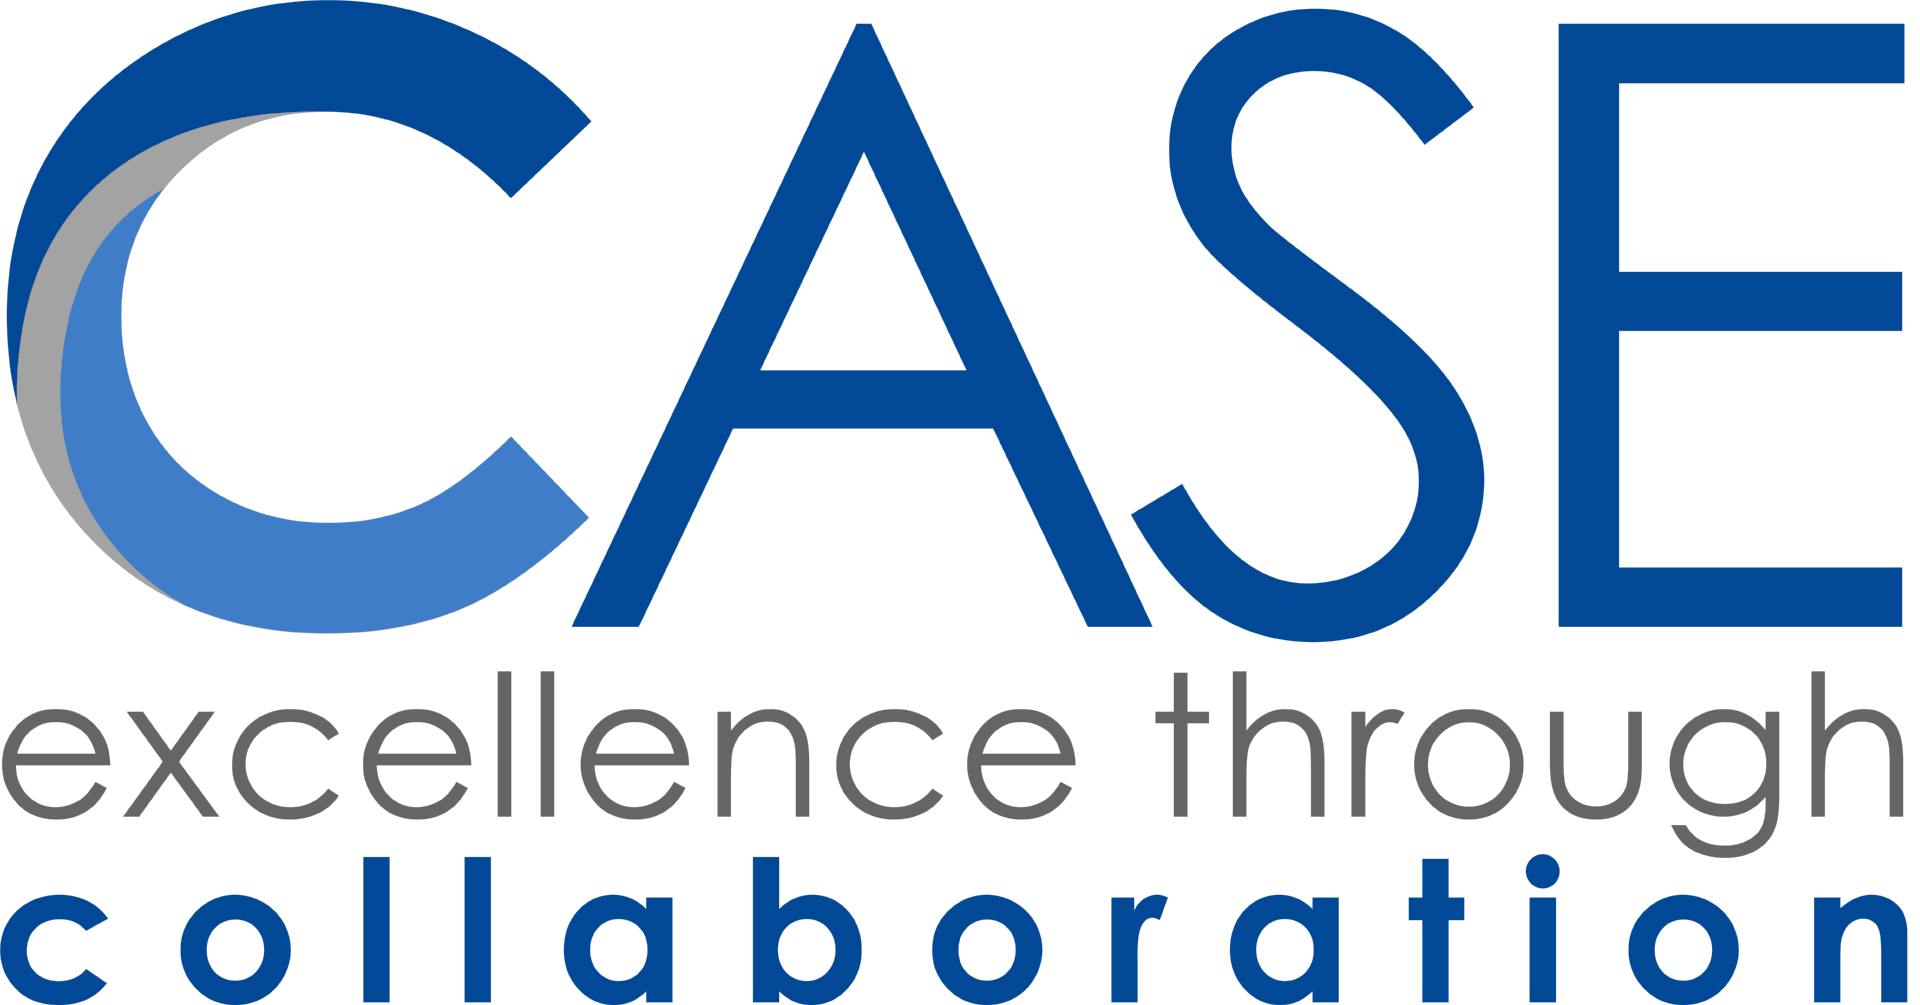 CASE (Cooperative Association for Special Education)'s Logo